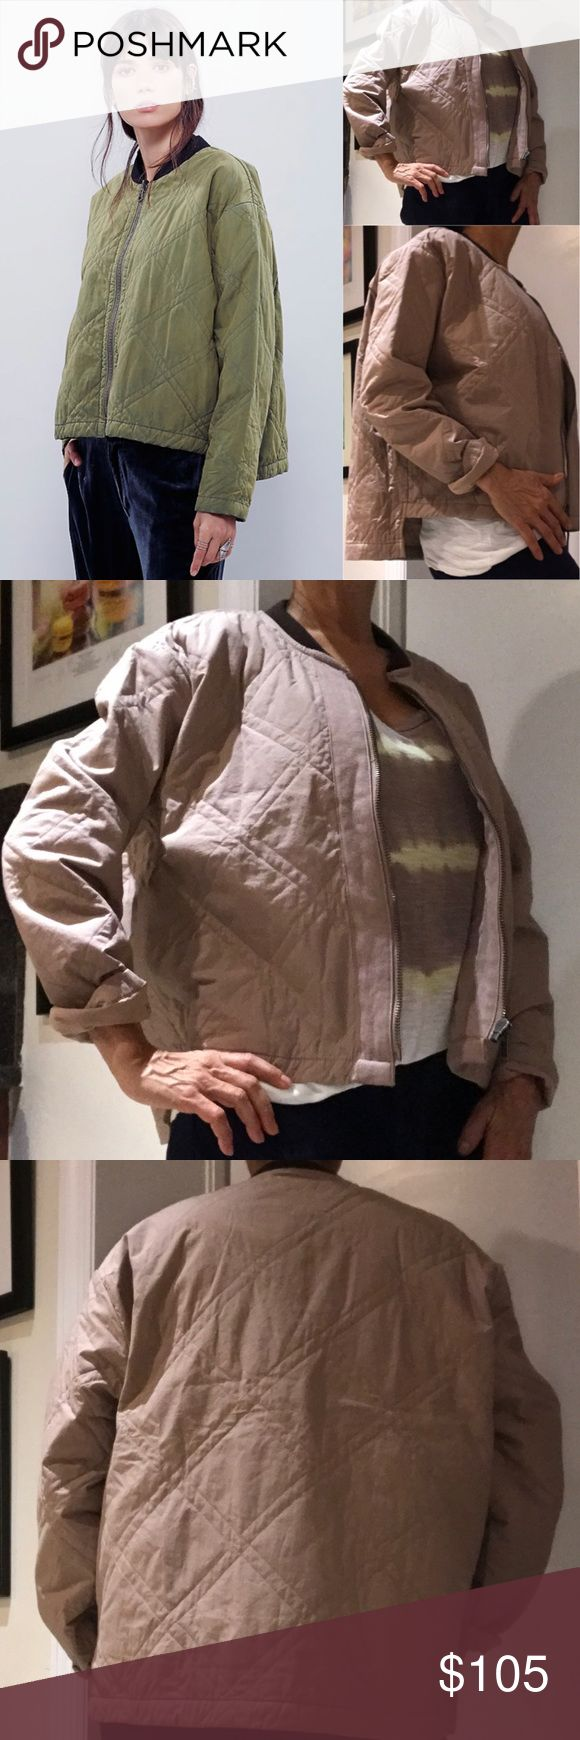 """Free People Quilted Aviator Jacket Free People Quilted Aviator Jacket Super soft quilted aviator jacket with contrast banded neckline. Full front zip and high-low hem.  Side pockets and exquisitely tailored/finished. Green from FP site, this item is khaki with brown contrasting neckline. XS but very ample fit--up to medium, see measurements below. 100% Cotton Bust: 48.0""""  Length: 21"""" front, 24"""" back Sleeve Length: 22"""" Free People Jackets & Coats"""